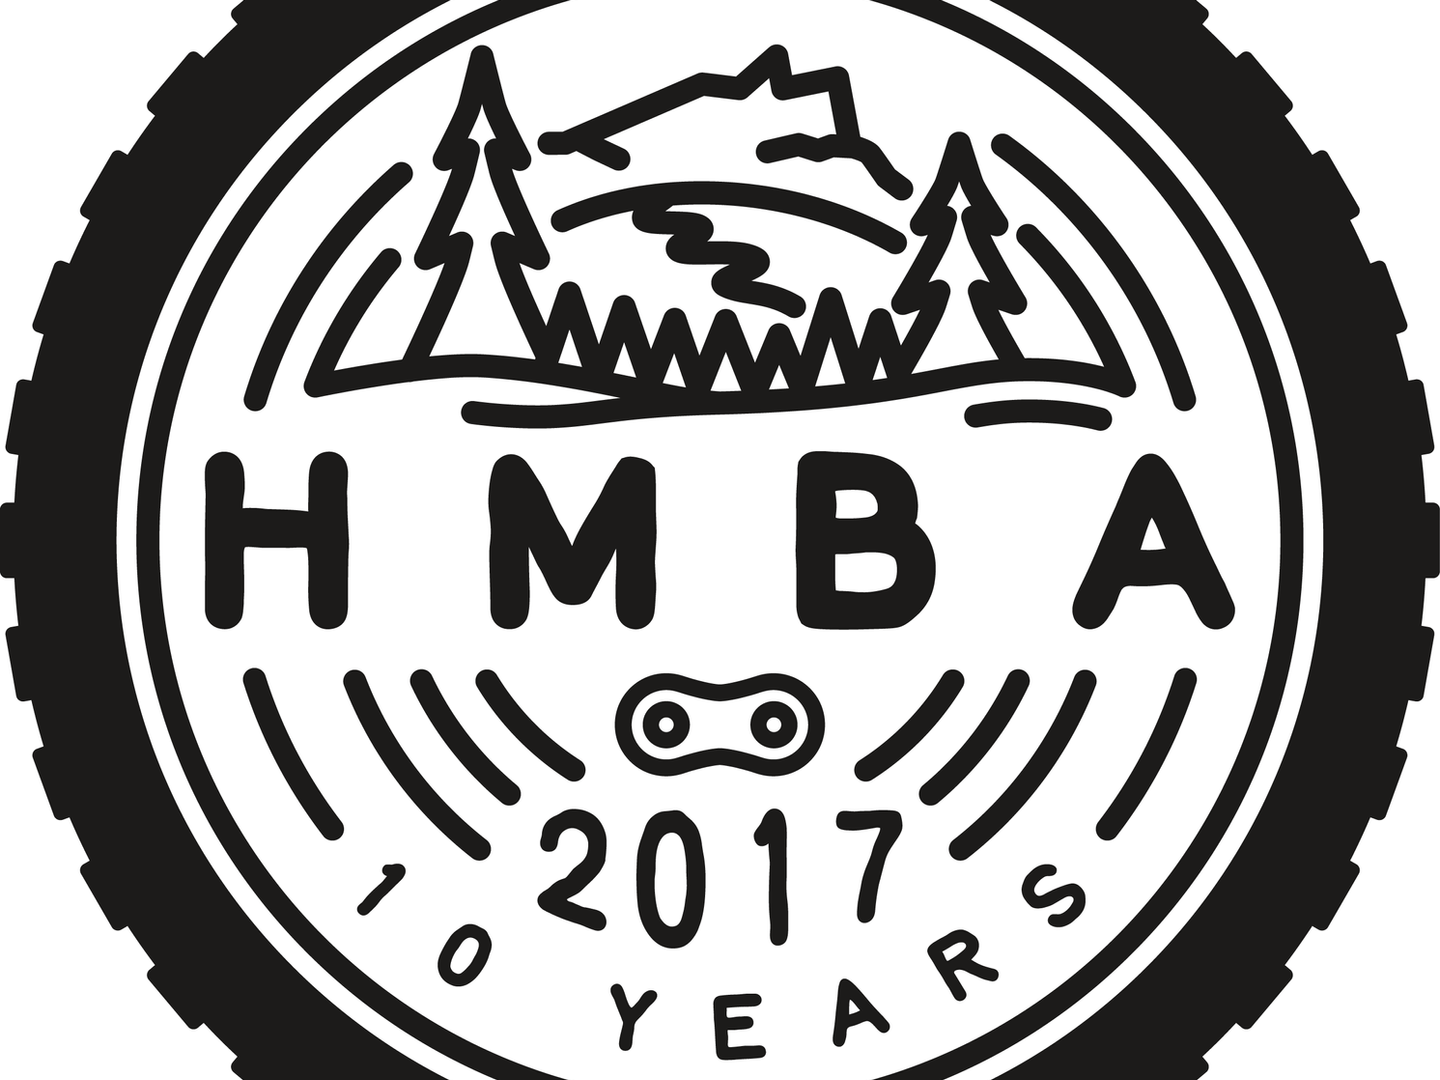 HMBA 10 Years Final on white.png